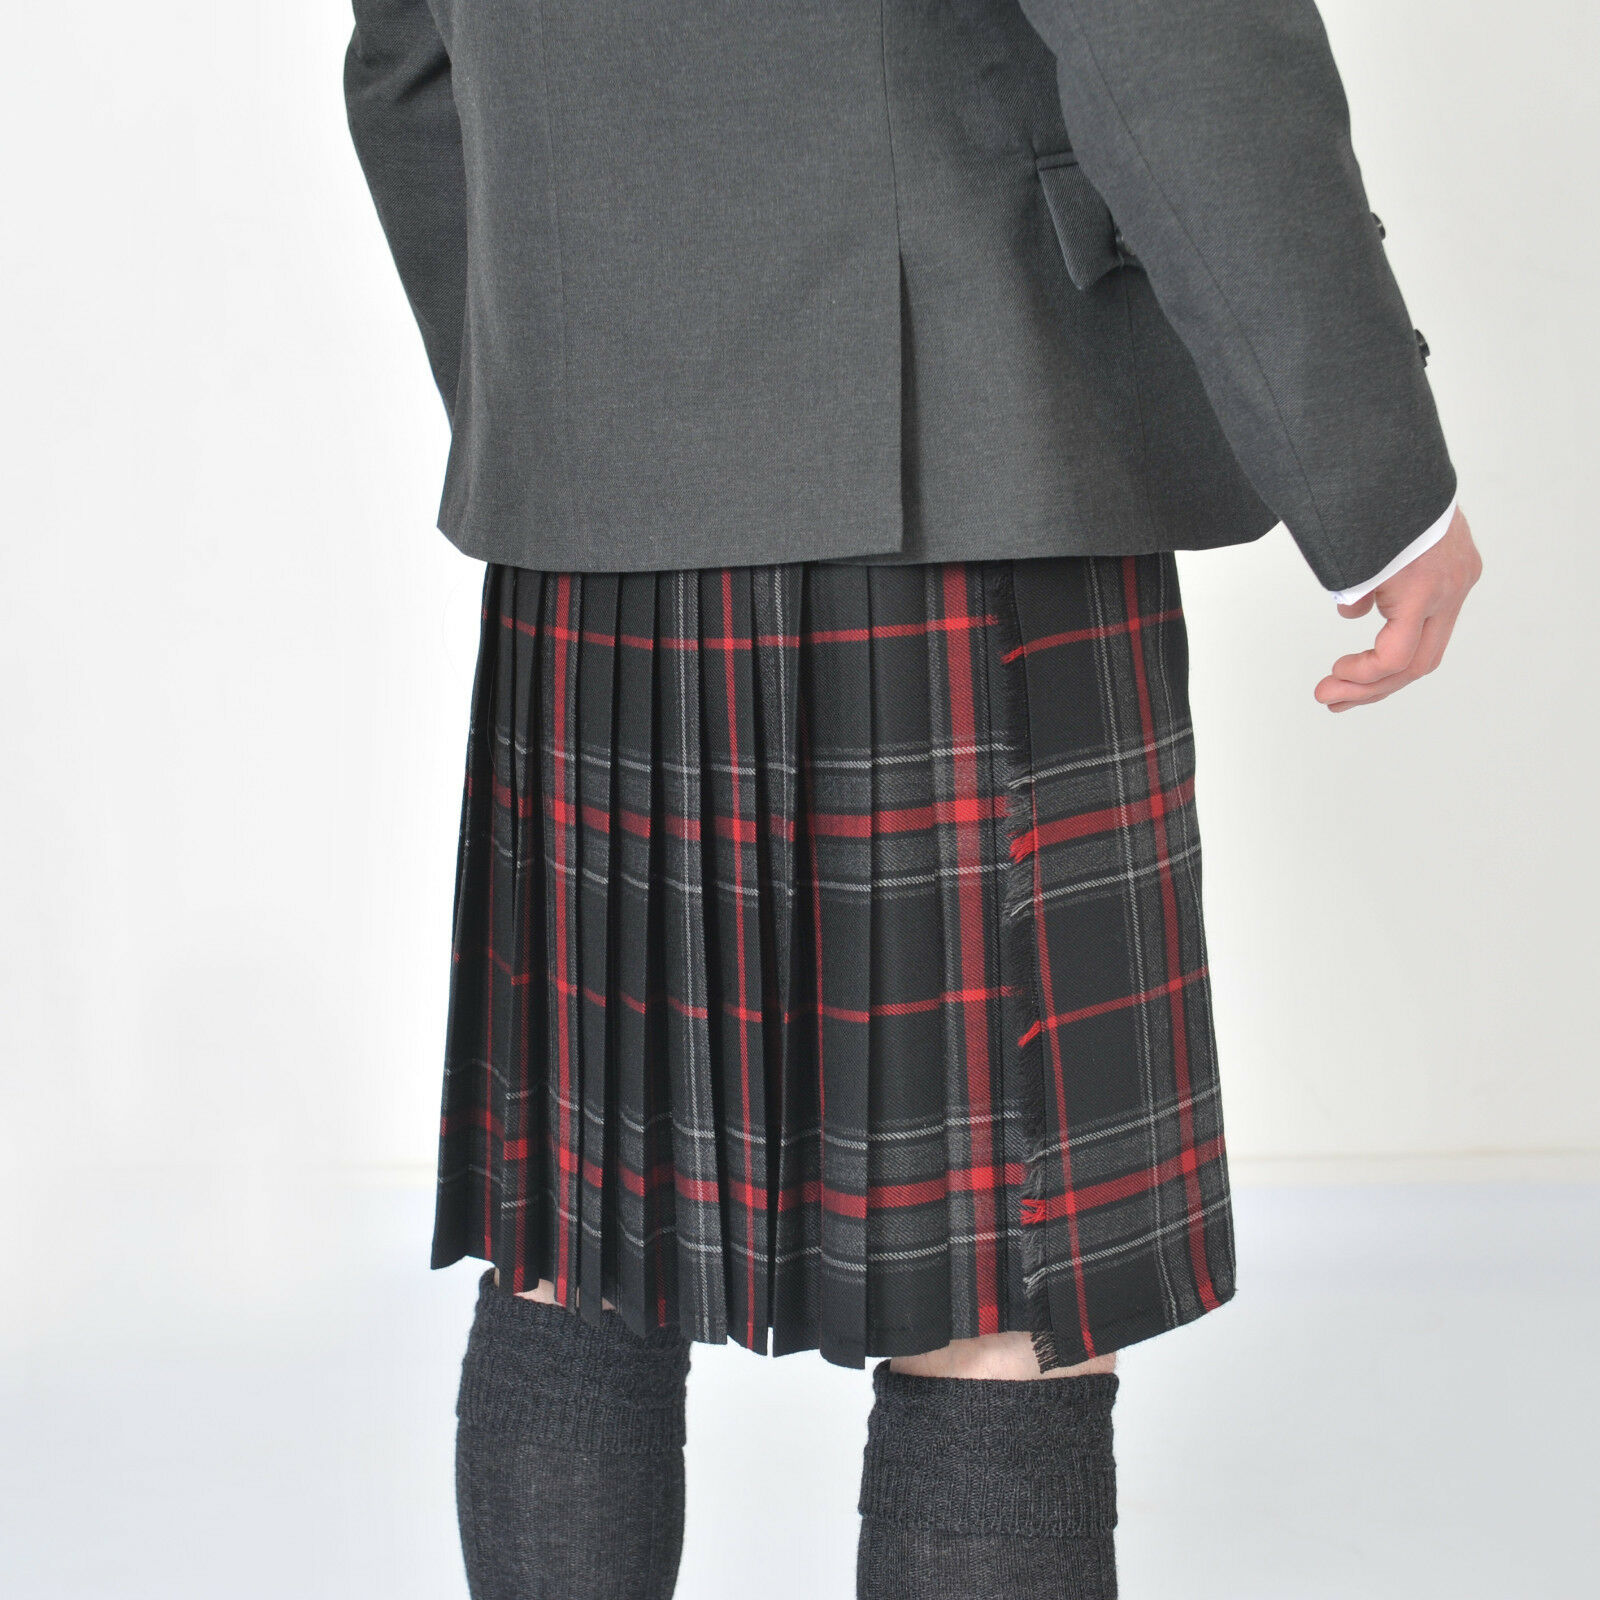 Chieftain Spirit Of Bruce Modern 8 Yard DELUXE Kilt All Sizes Exclusive 2 Us